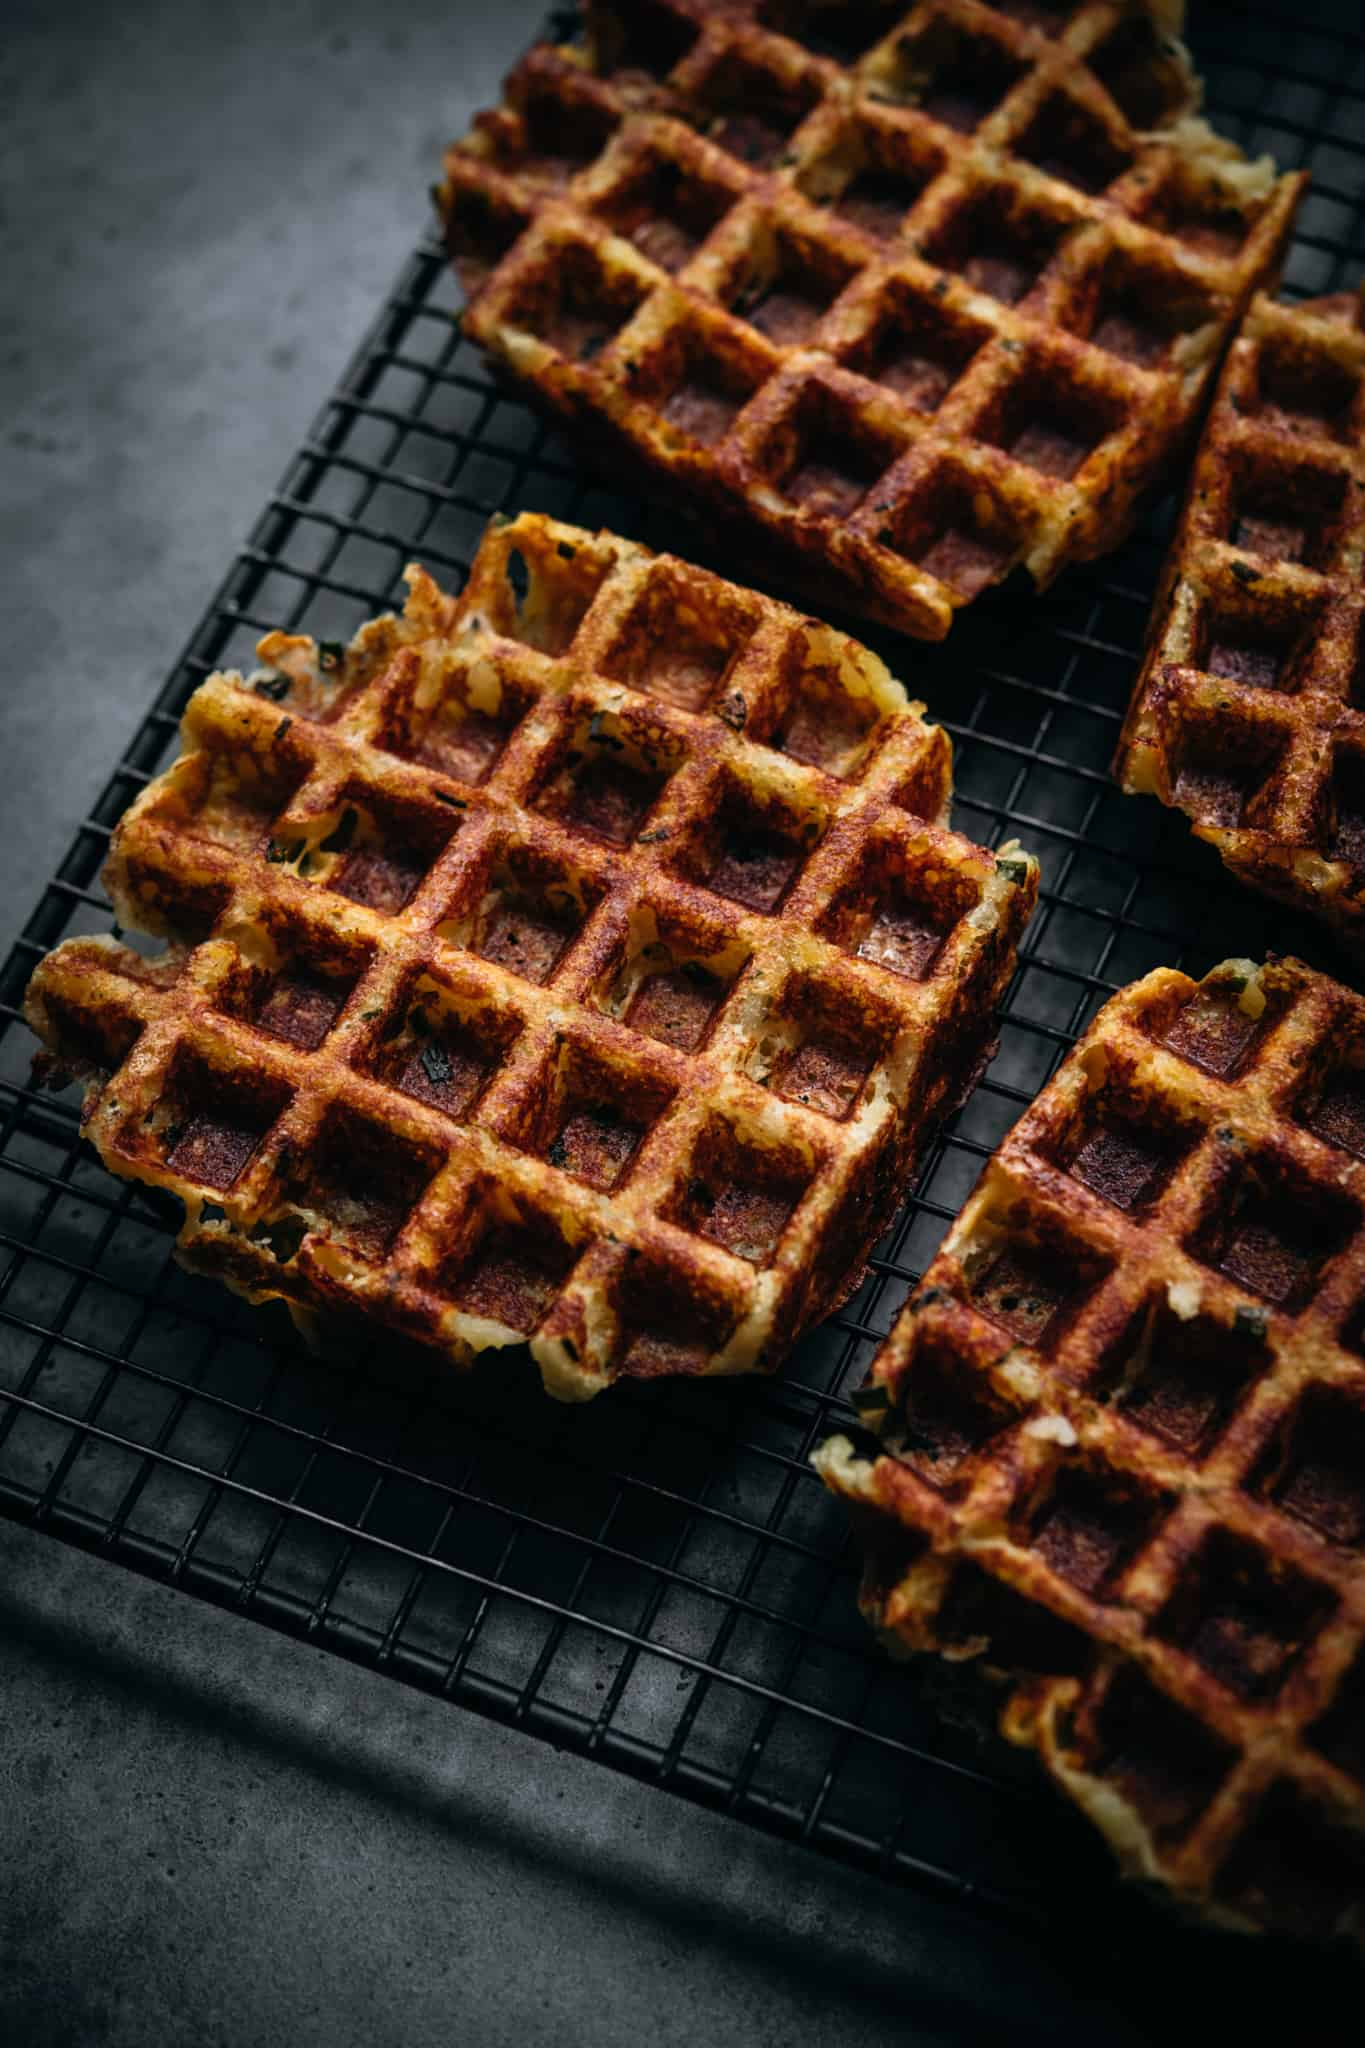 side view of crispy mashed potato waffles on cooling rack